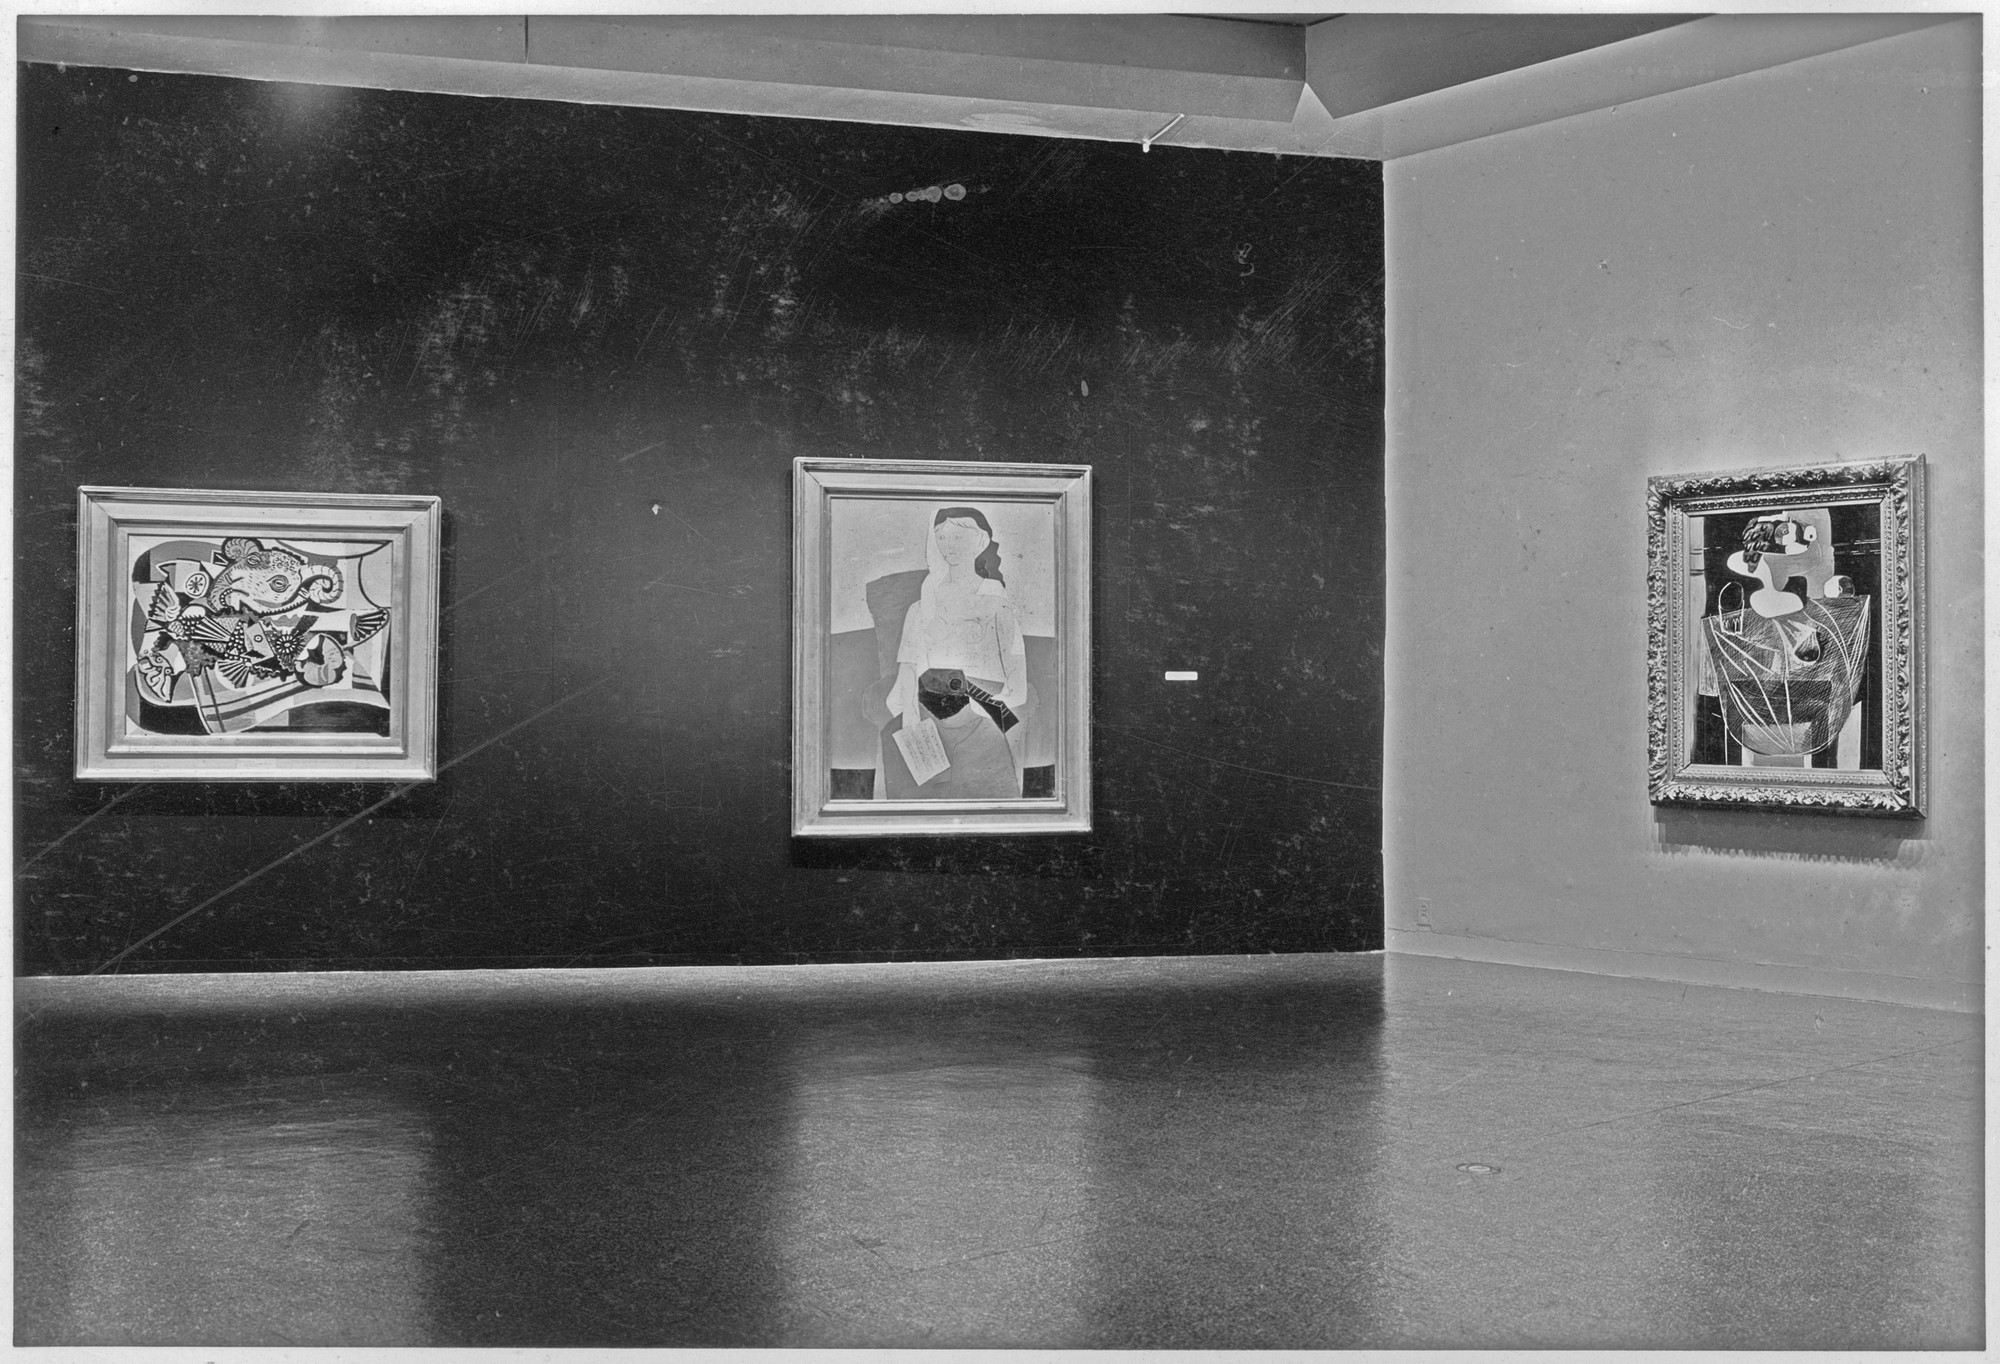 "Installation view of the exhibition, ""Picasso: Forty Years of His Art."" November 15, 1939–January 7, 1940. Photographic Archive. The Museum of Modern Art Archives, New York. IN91.1. Photograph by Soichi Sunami."